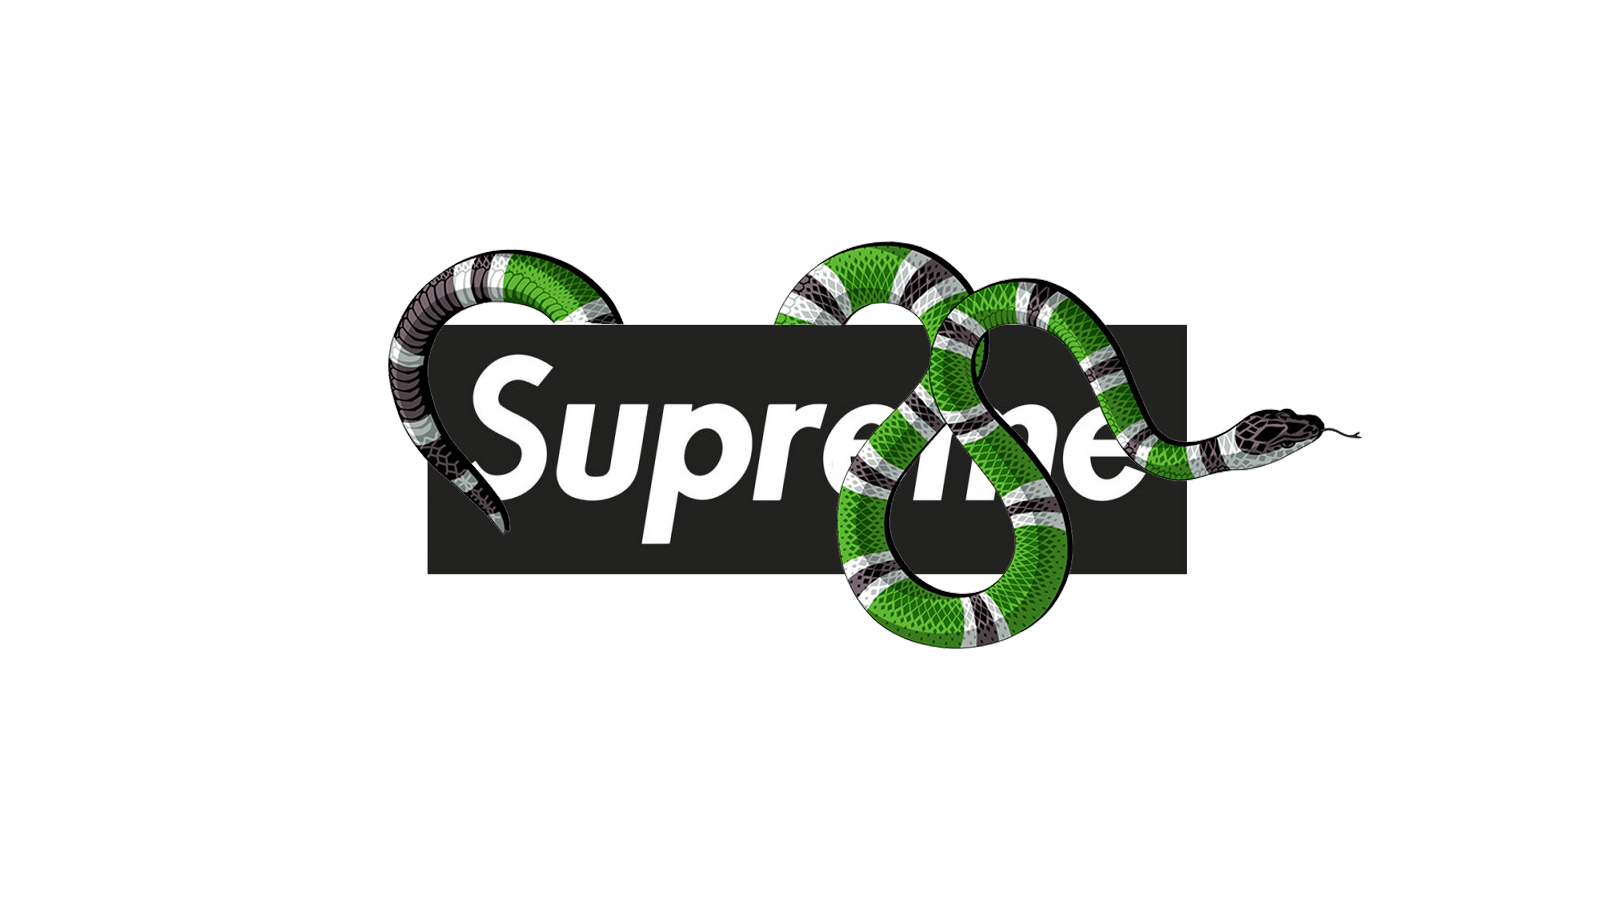 1600x900 Supreme And Gucci Wallpapers